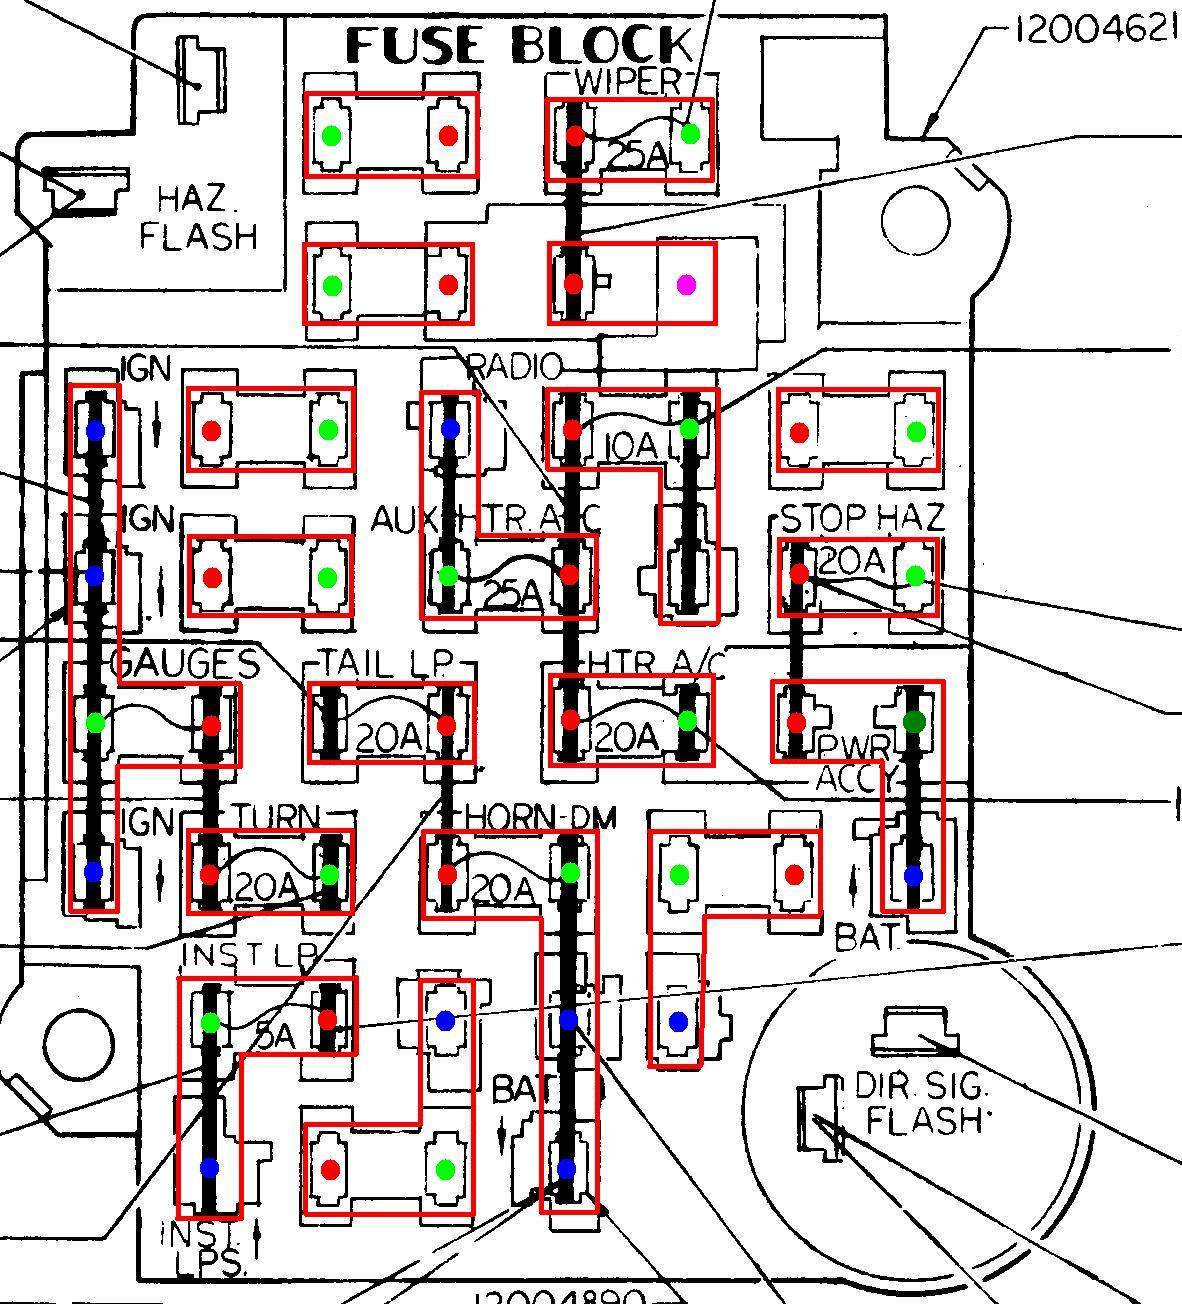 hight resolution of gm fuse box diagram wiring diagram schemes ls engine swap fox body gm fuse block diagram